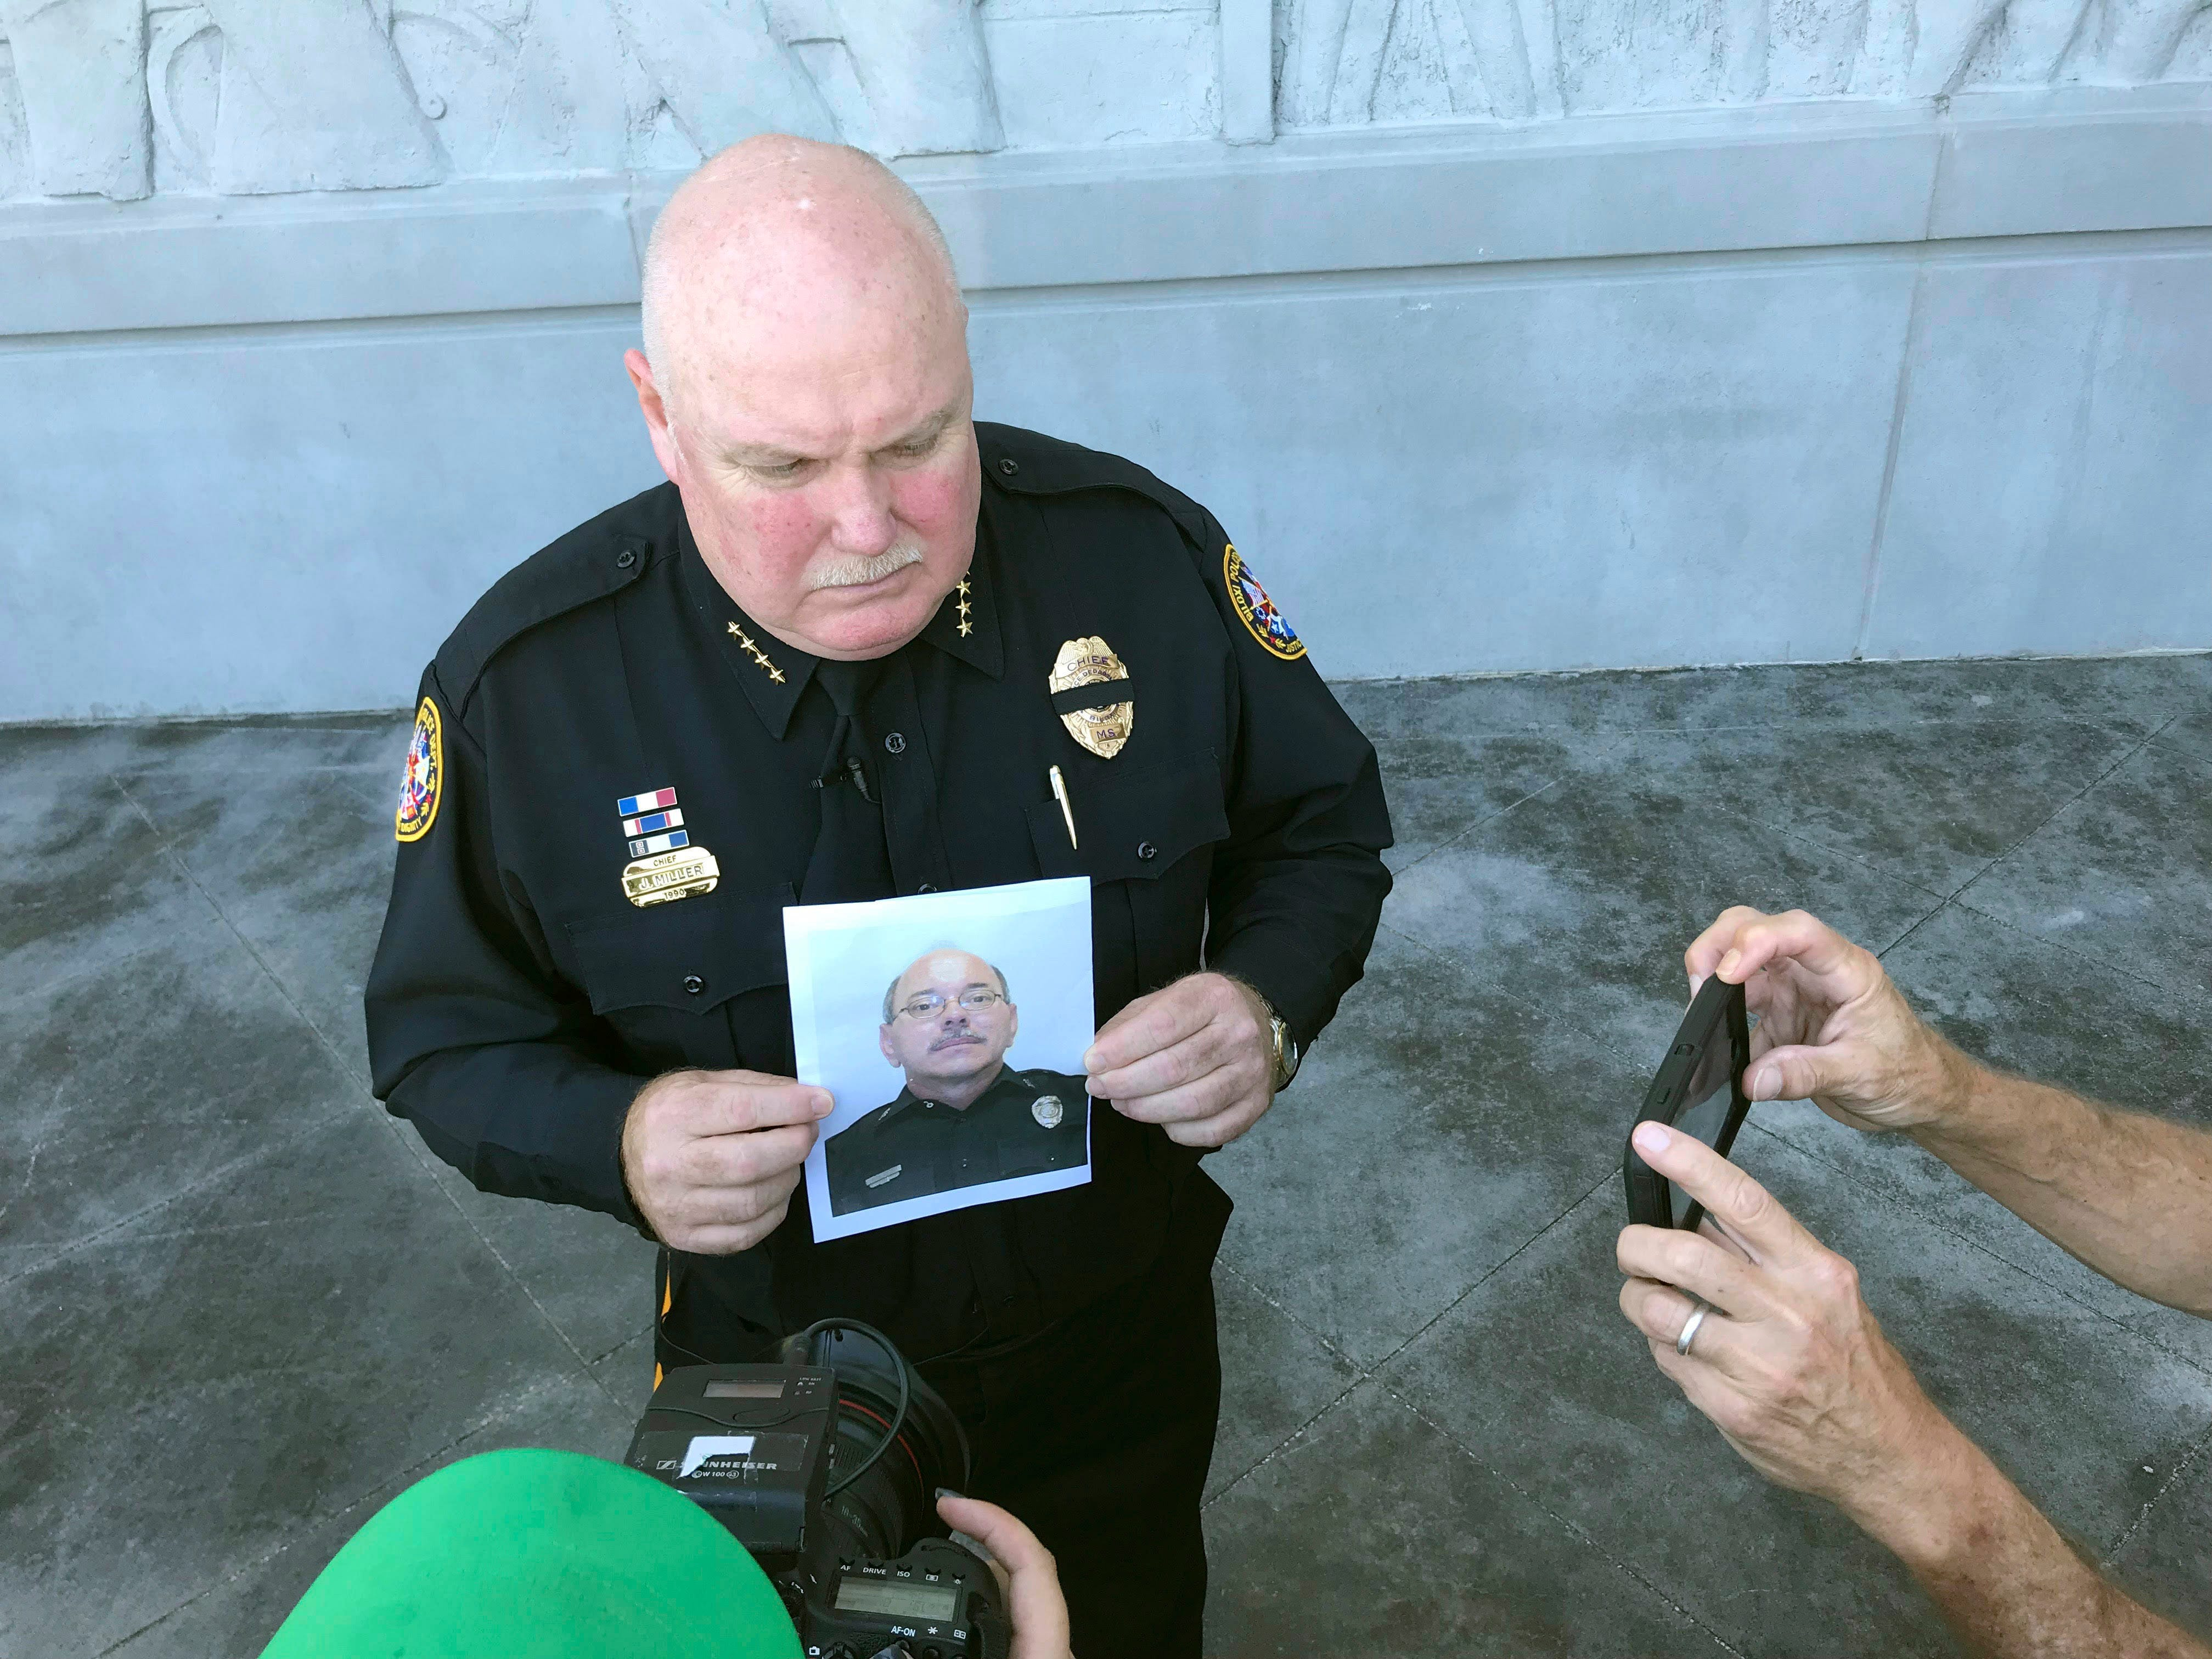 Biloxi Police Chief John Miller holds a departmental photograph of Officer John McKeithen who was killed Sunday night, May, 5, to media, outside the department building, in Biloxi, Miss., prior to a news conference Monday, May 6, 2019.